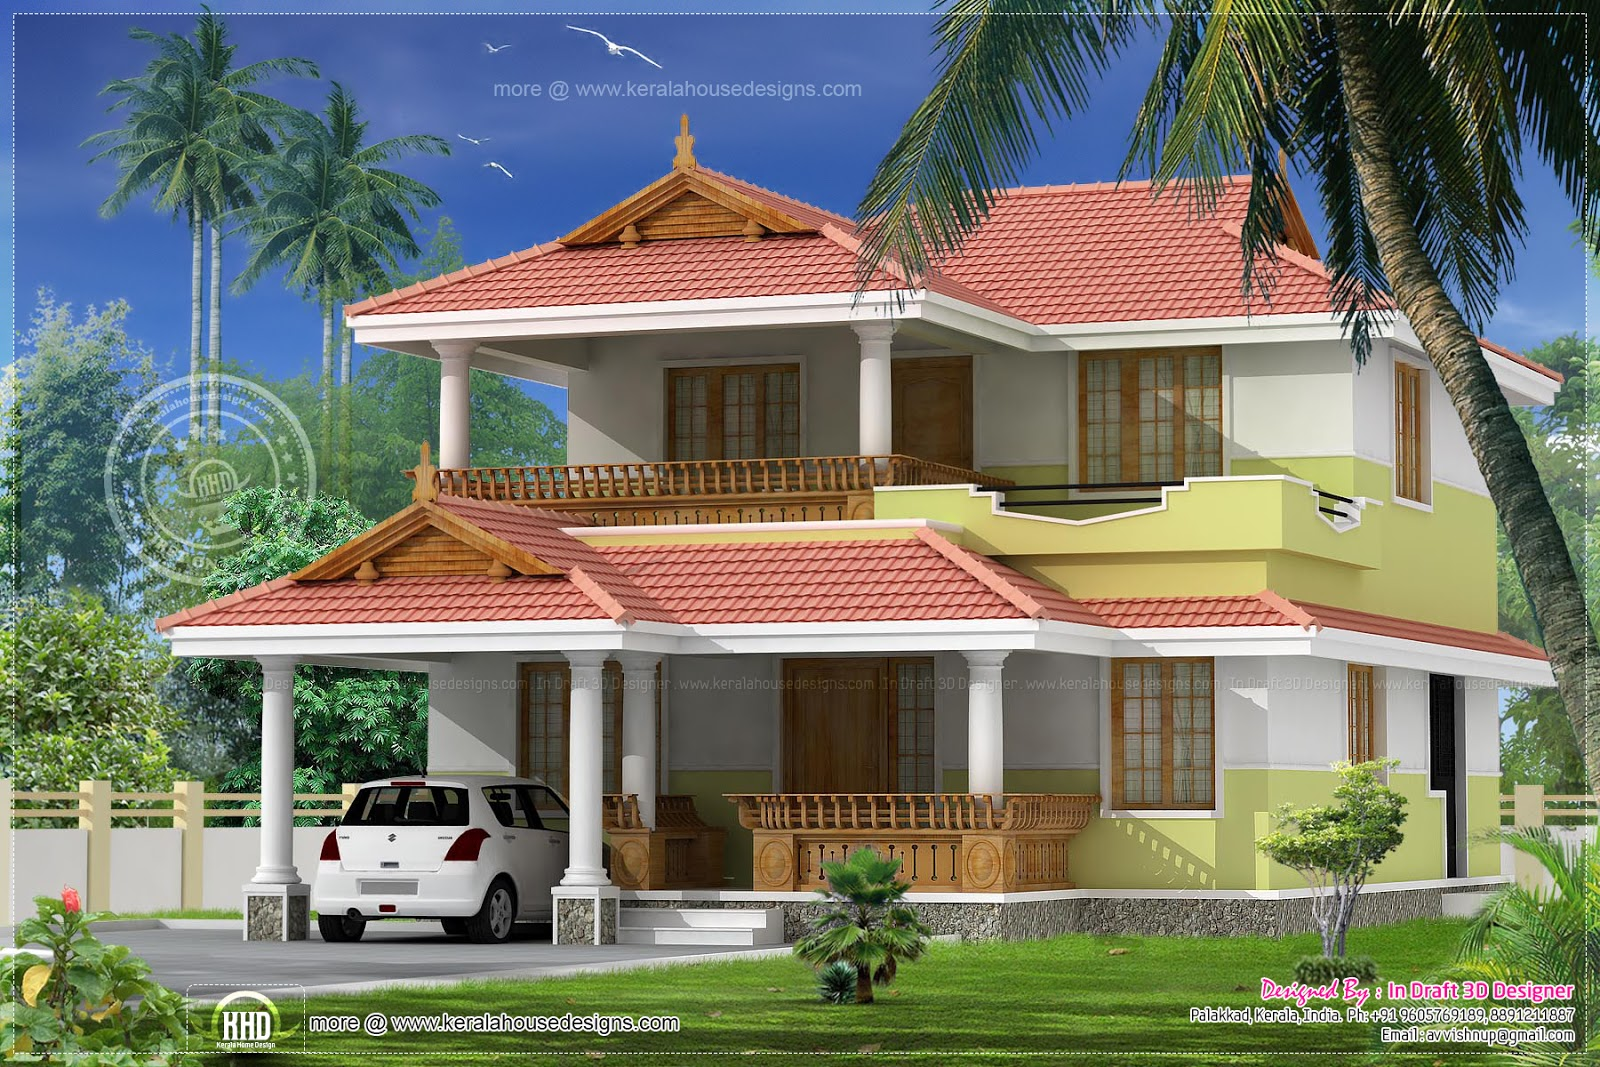 Kerala model traditional house home design and floor trend home design and decor - Kerala exterior model homes ...